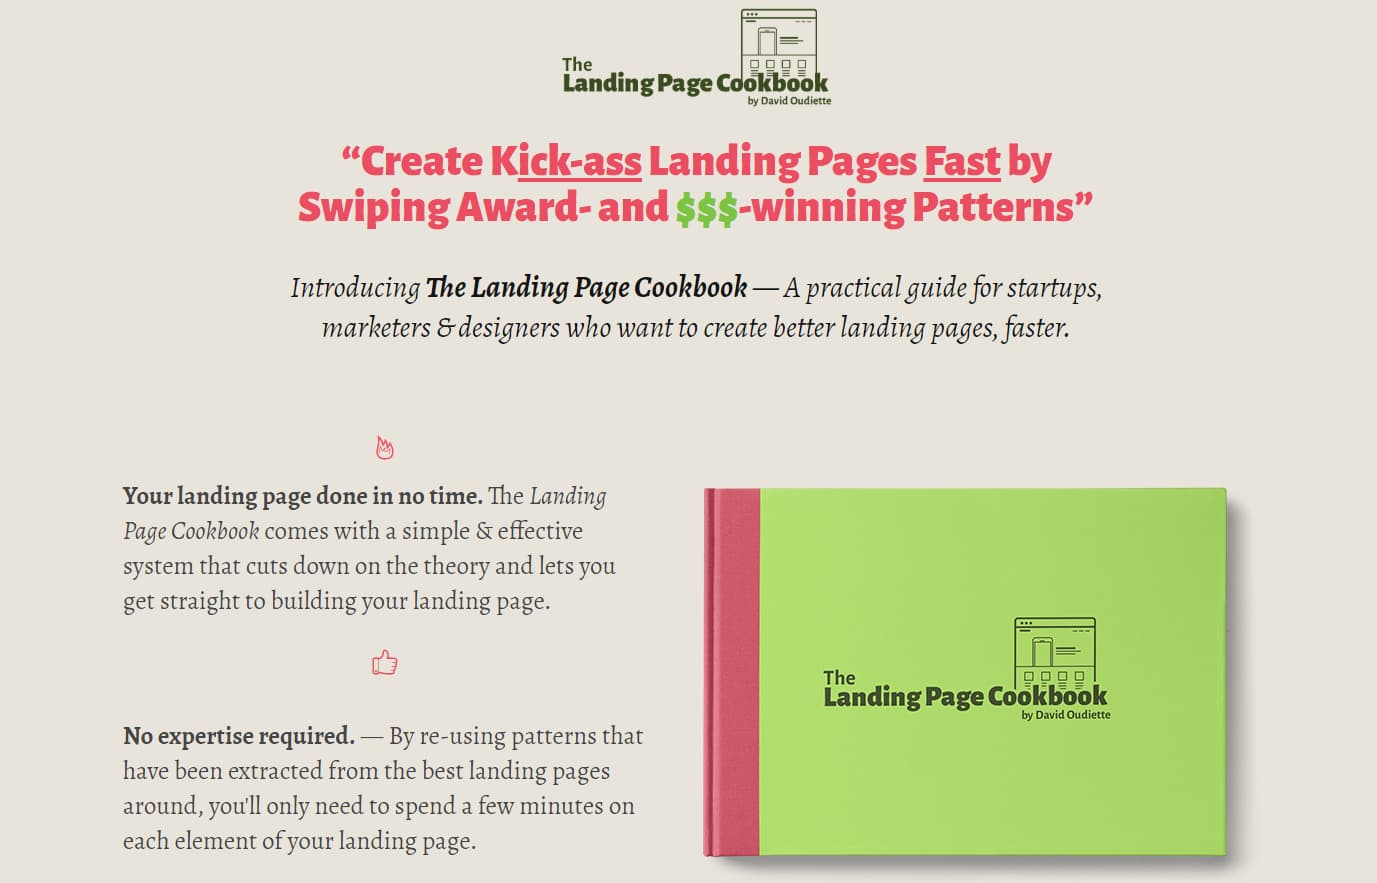 L'ebook The landing page cookbook